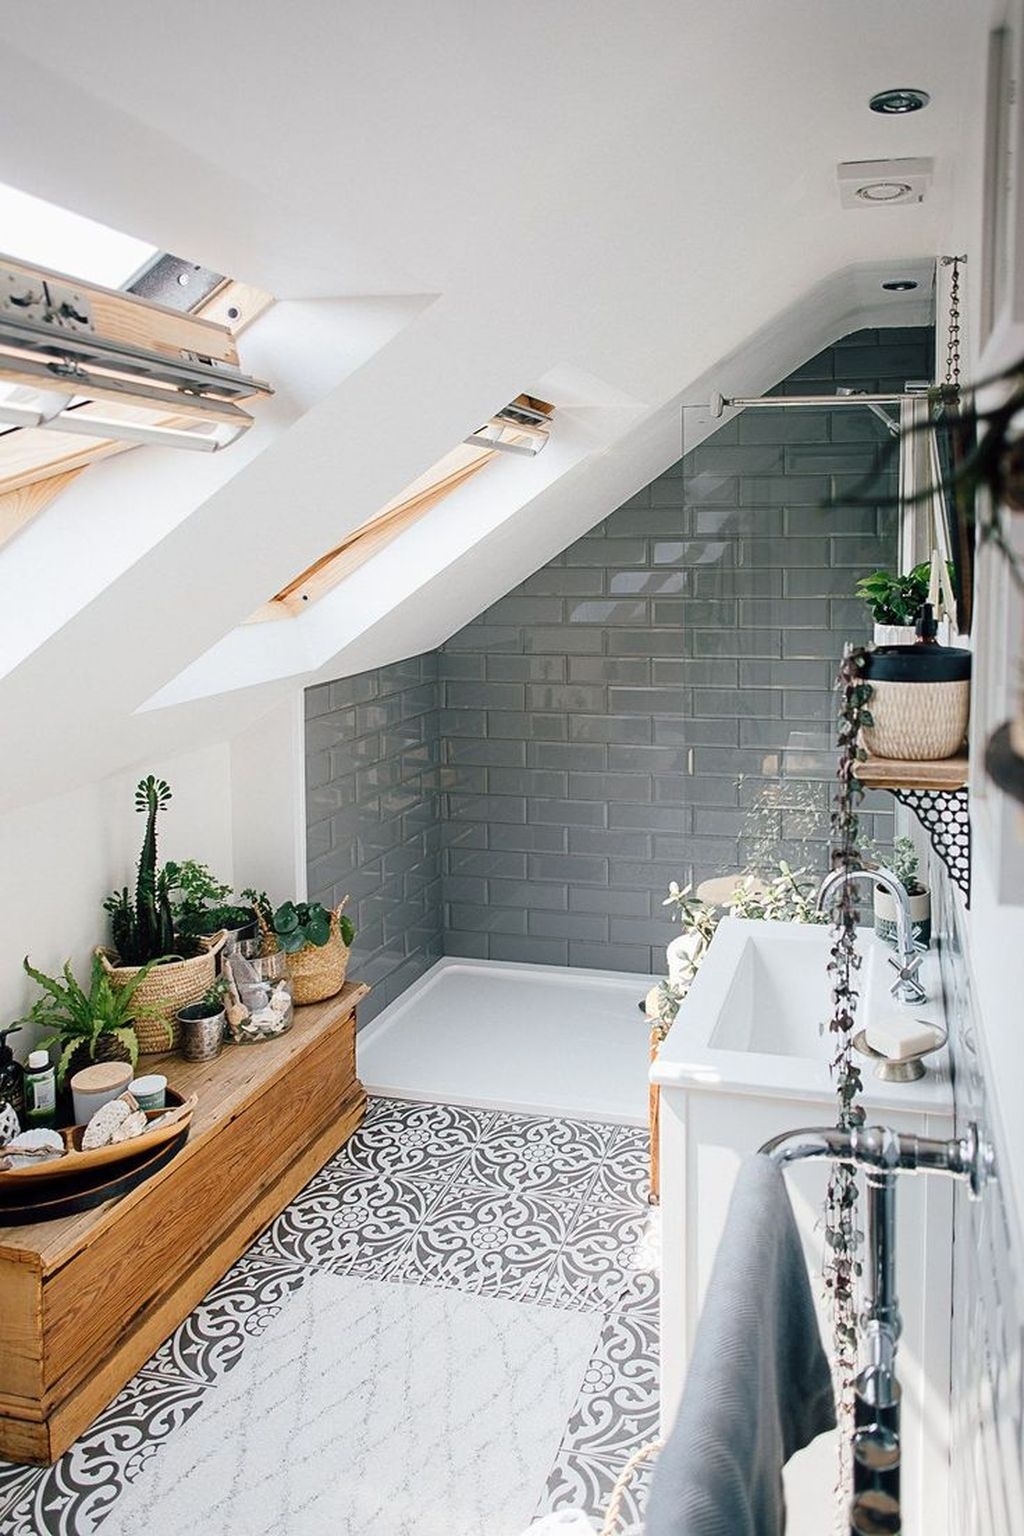 Adorable Home Interior Remodel Design Ideas To Try Asap 28